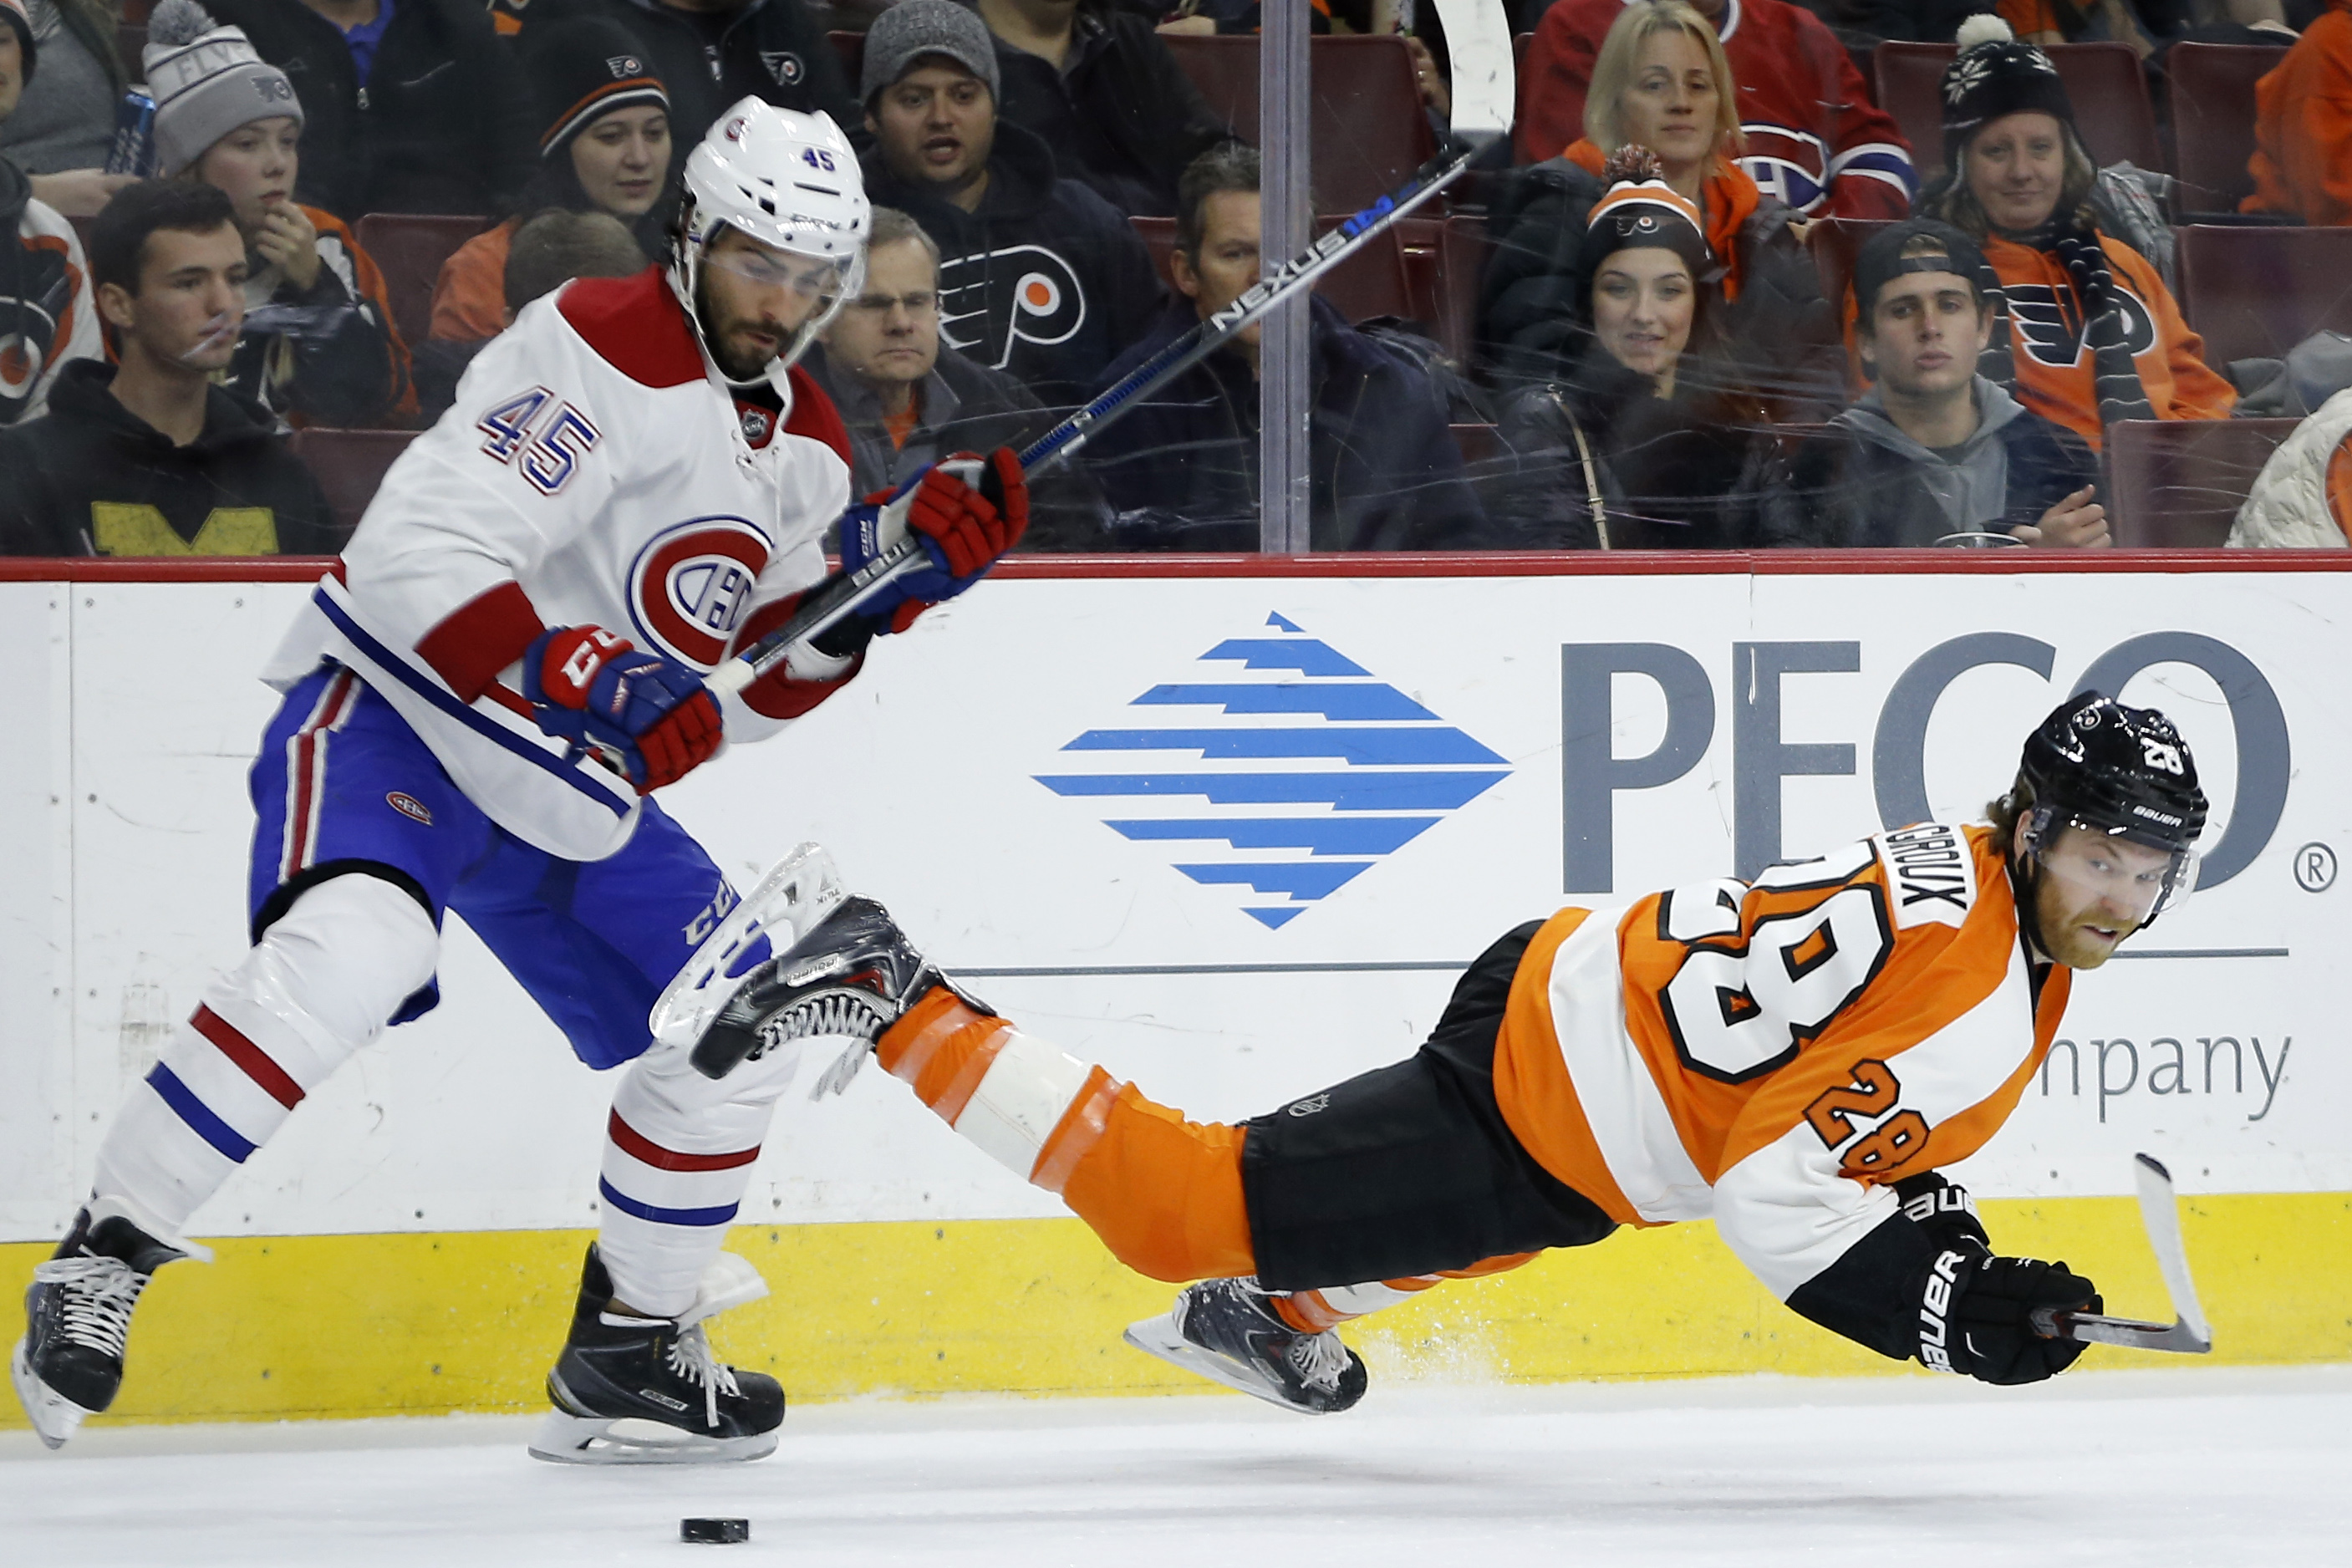 Philadelphia Flyers' Claude Giroux, right, falls after a hit from Montreal Canadiens' Mark Barberio during the second period of an NHL hockey game, Tuesday, Jan. 5, 2016, in Philadelphia. (AP Photo/Matt Slocum)